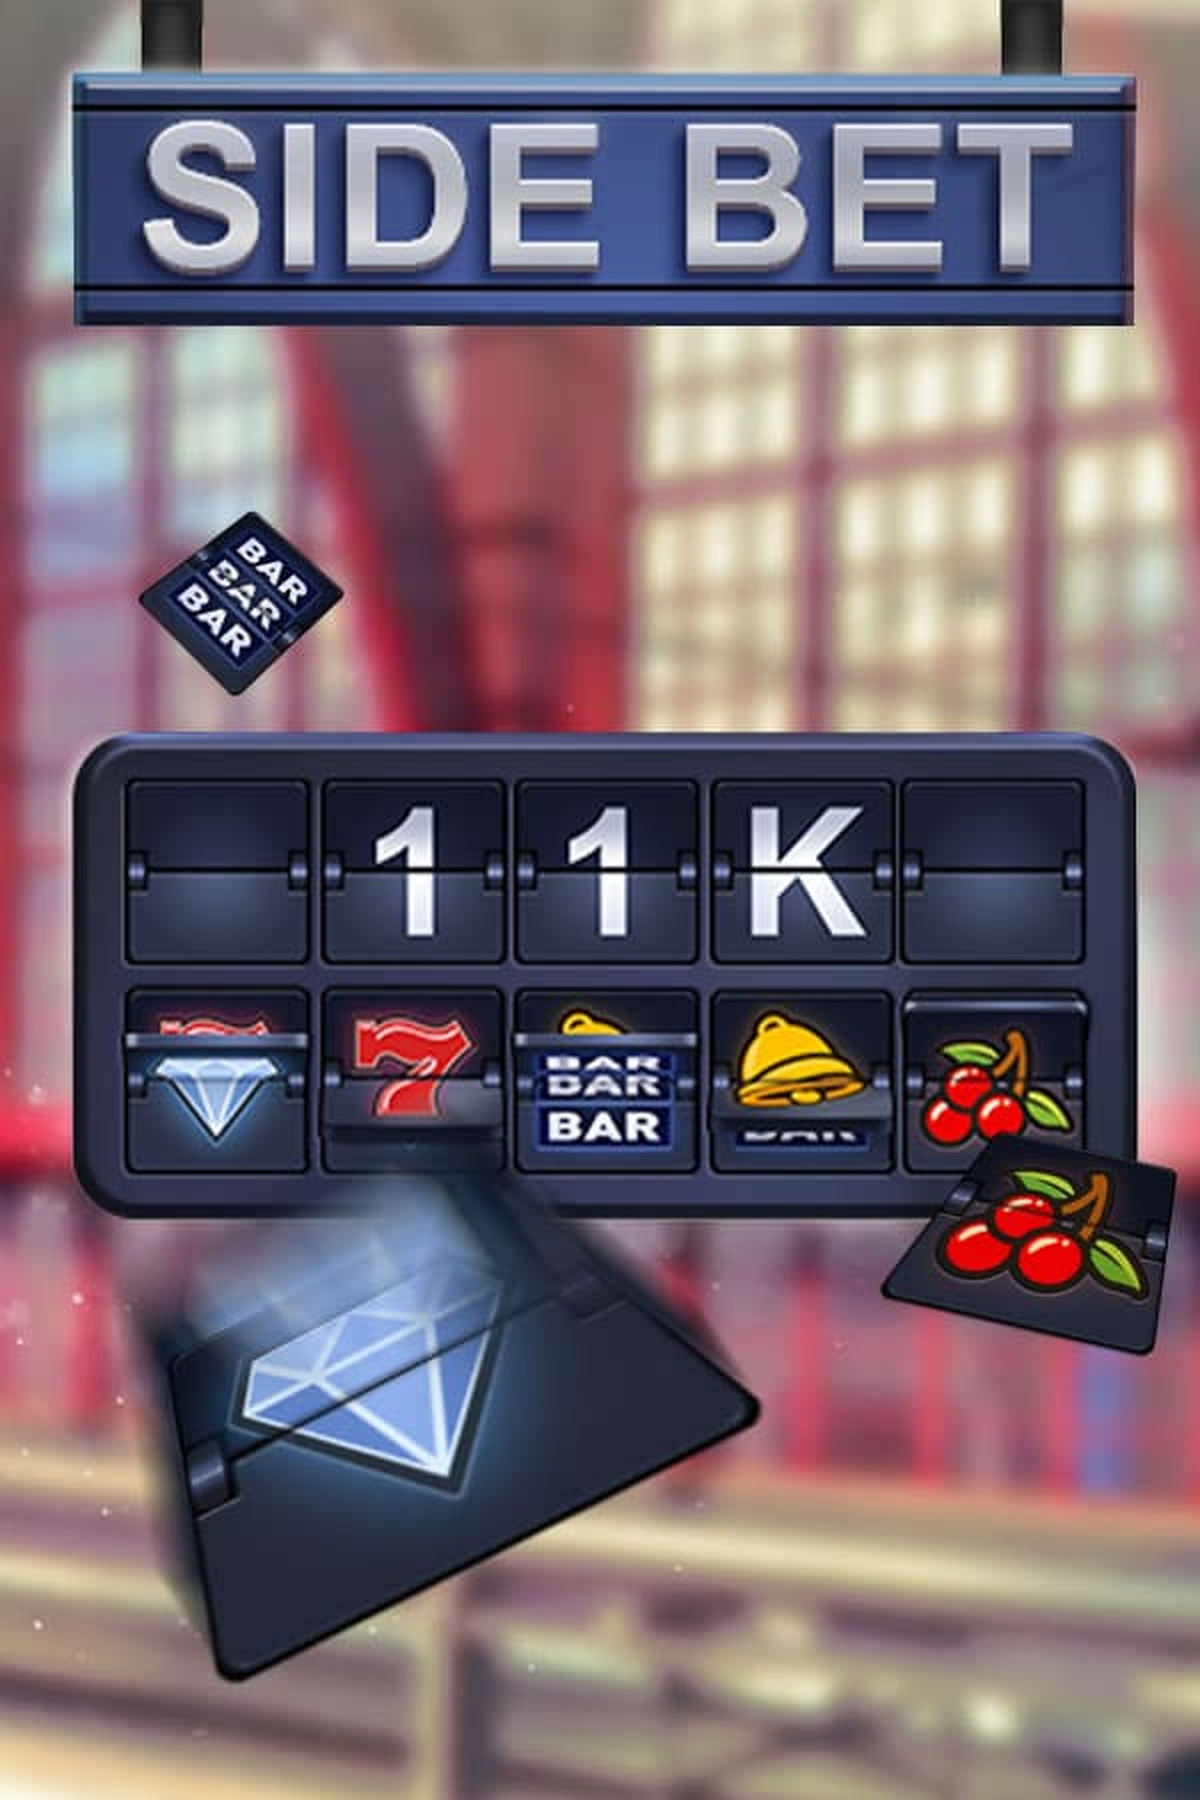 The Side Bet 11K Online Slot Demo Game by Green Jade Games